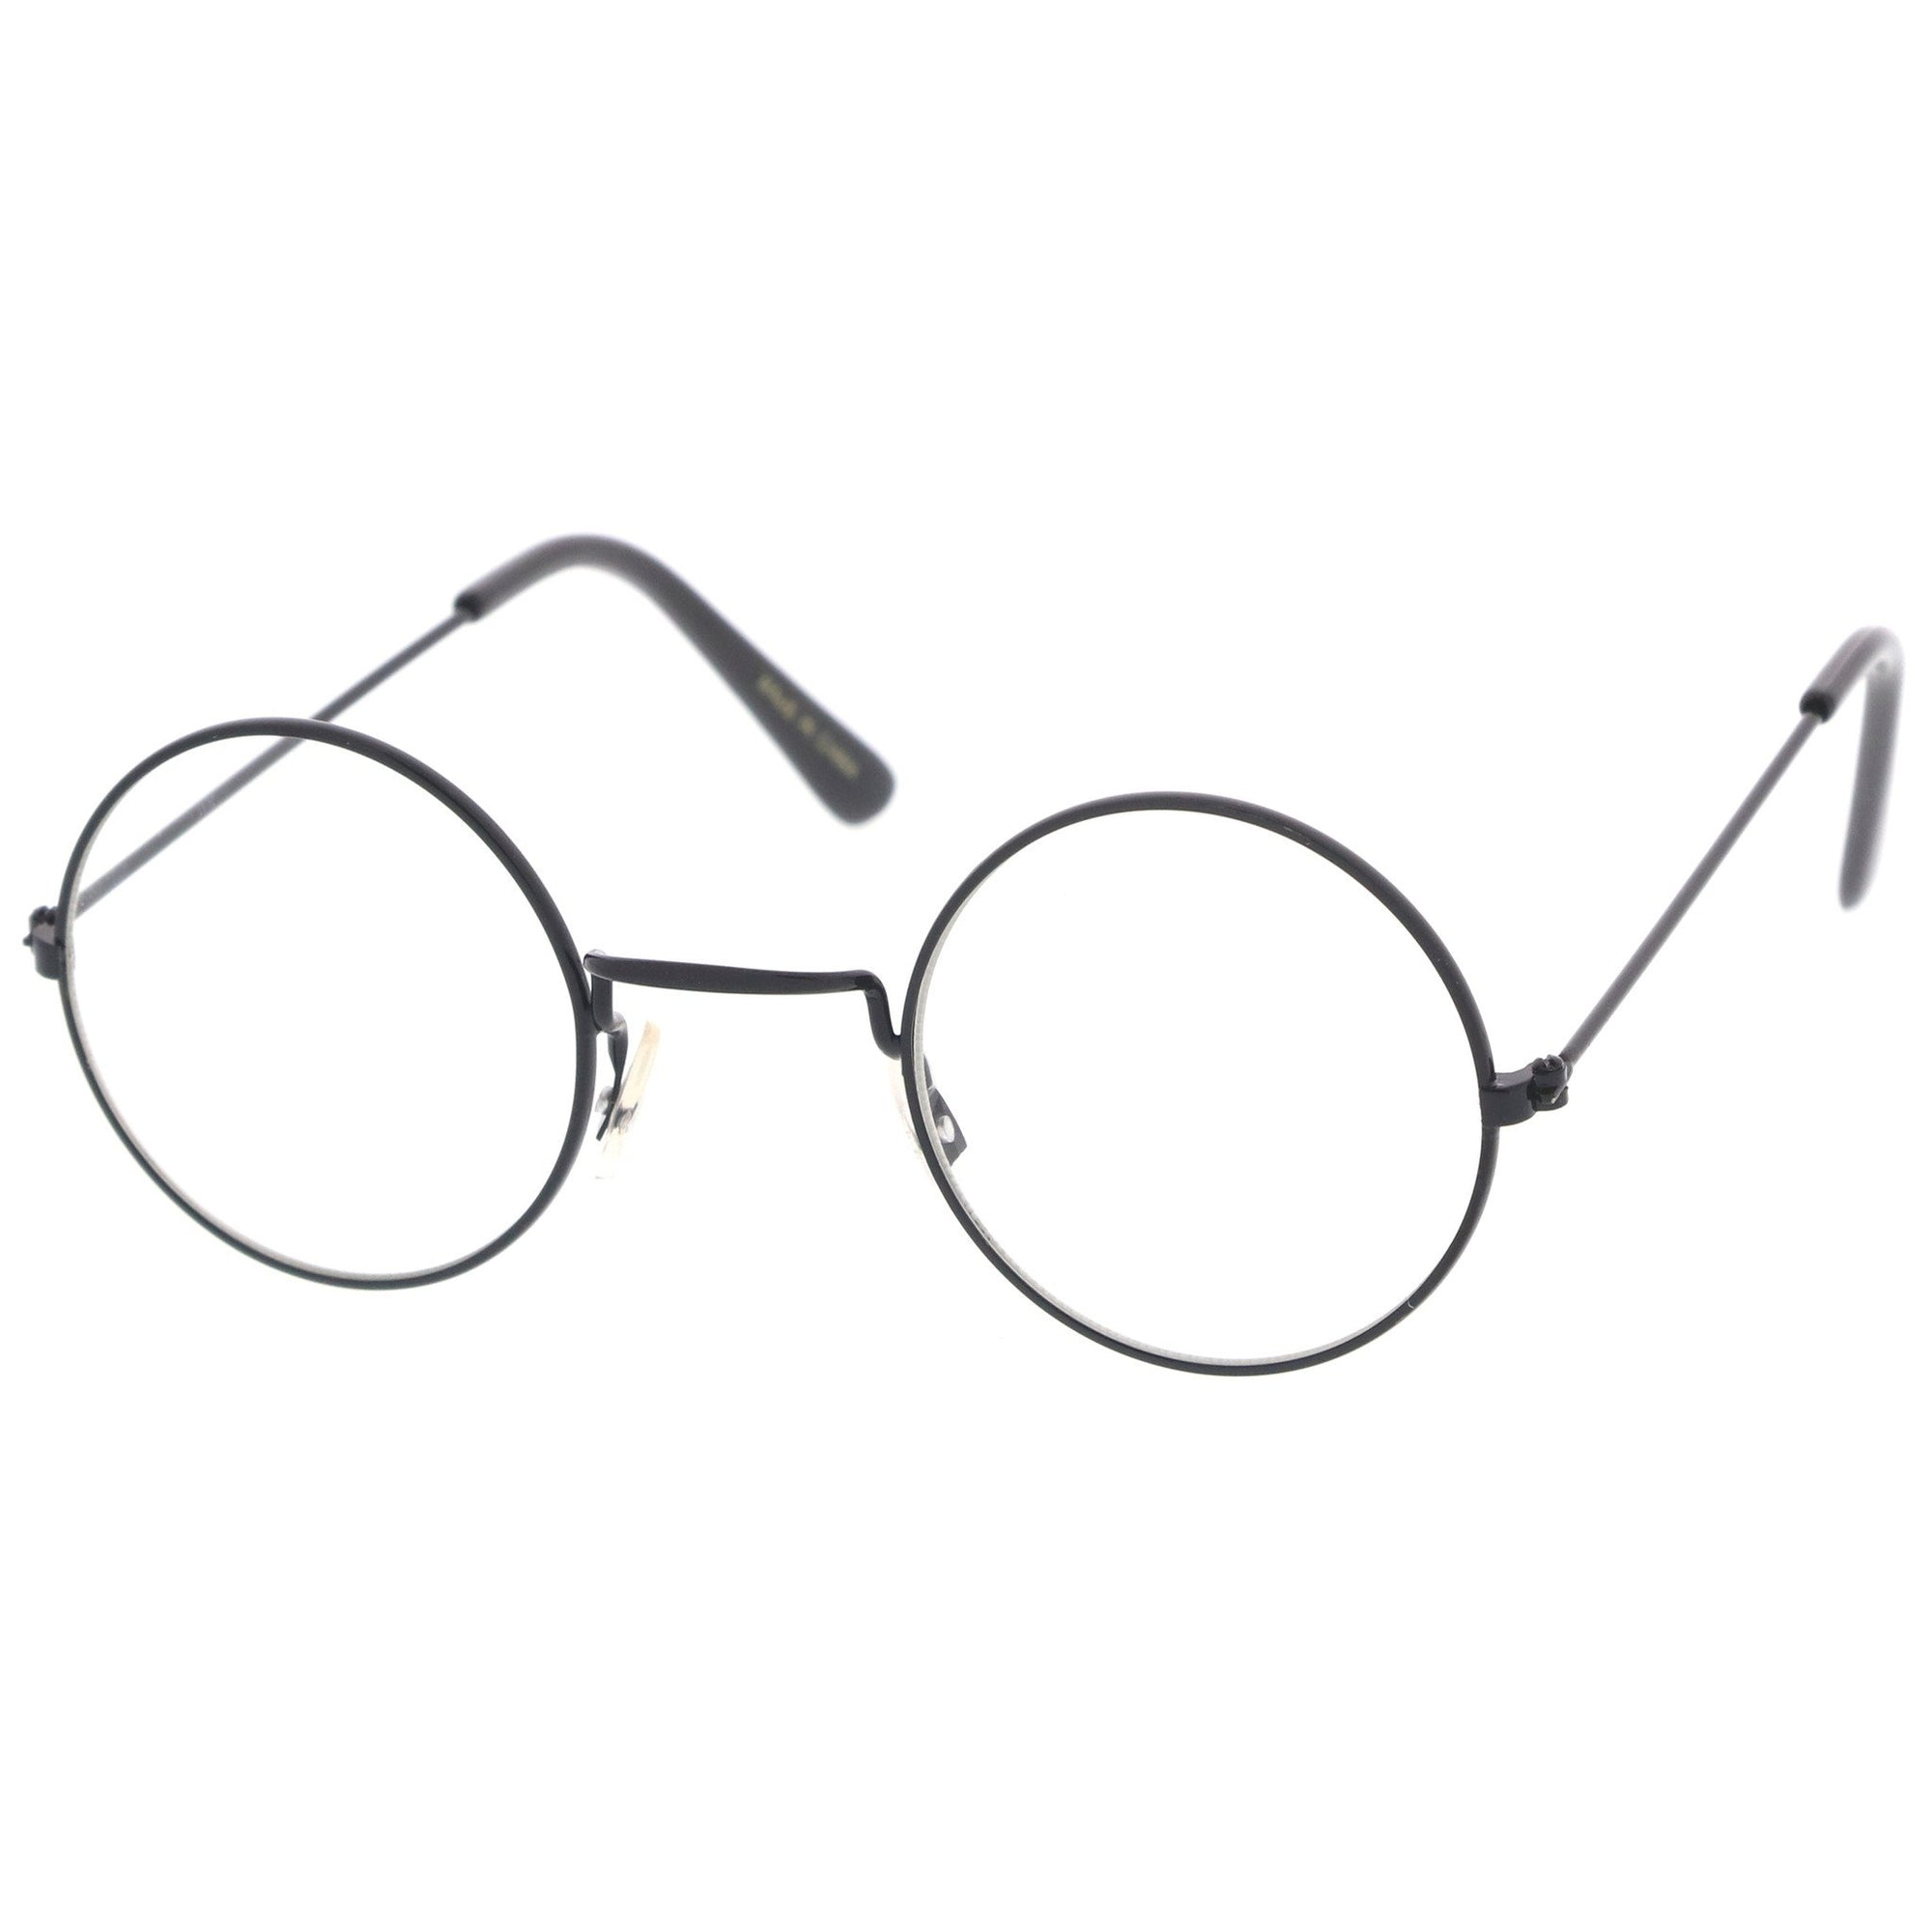 985a35d4384 ... Vintage Inspired Round Metal Frame Clear Lens Glasses 9637 · Black Clear  · Black Clear